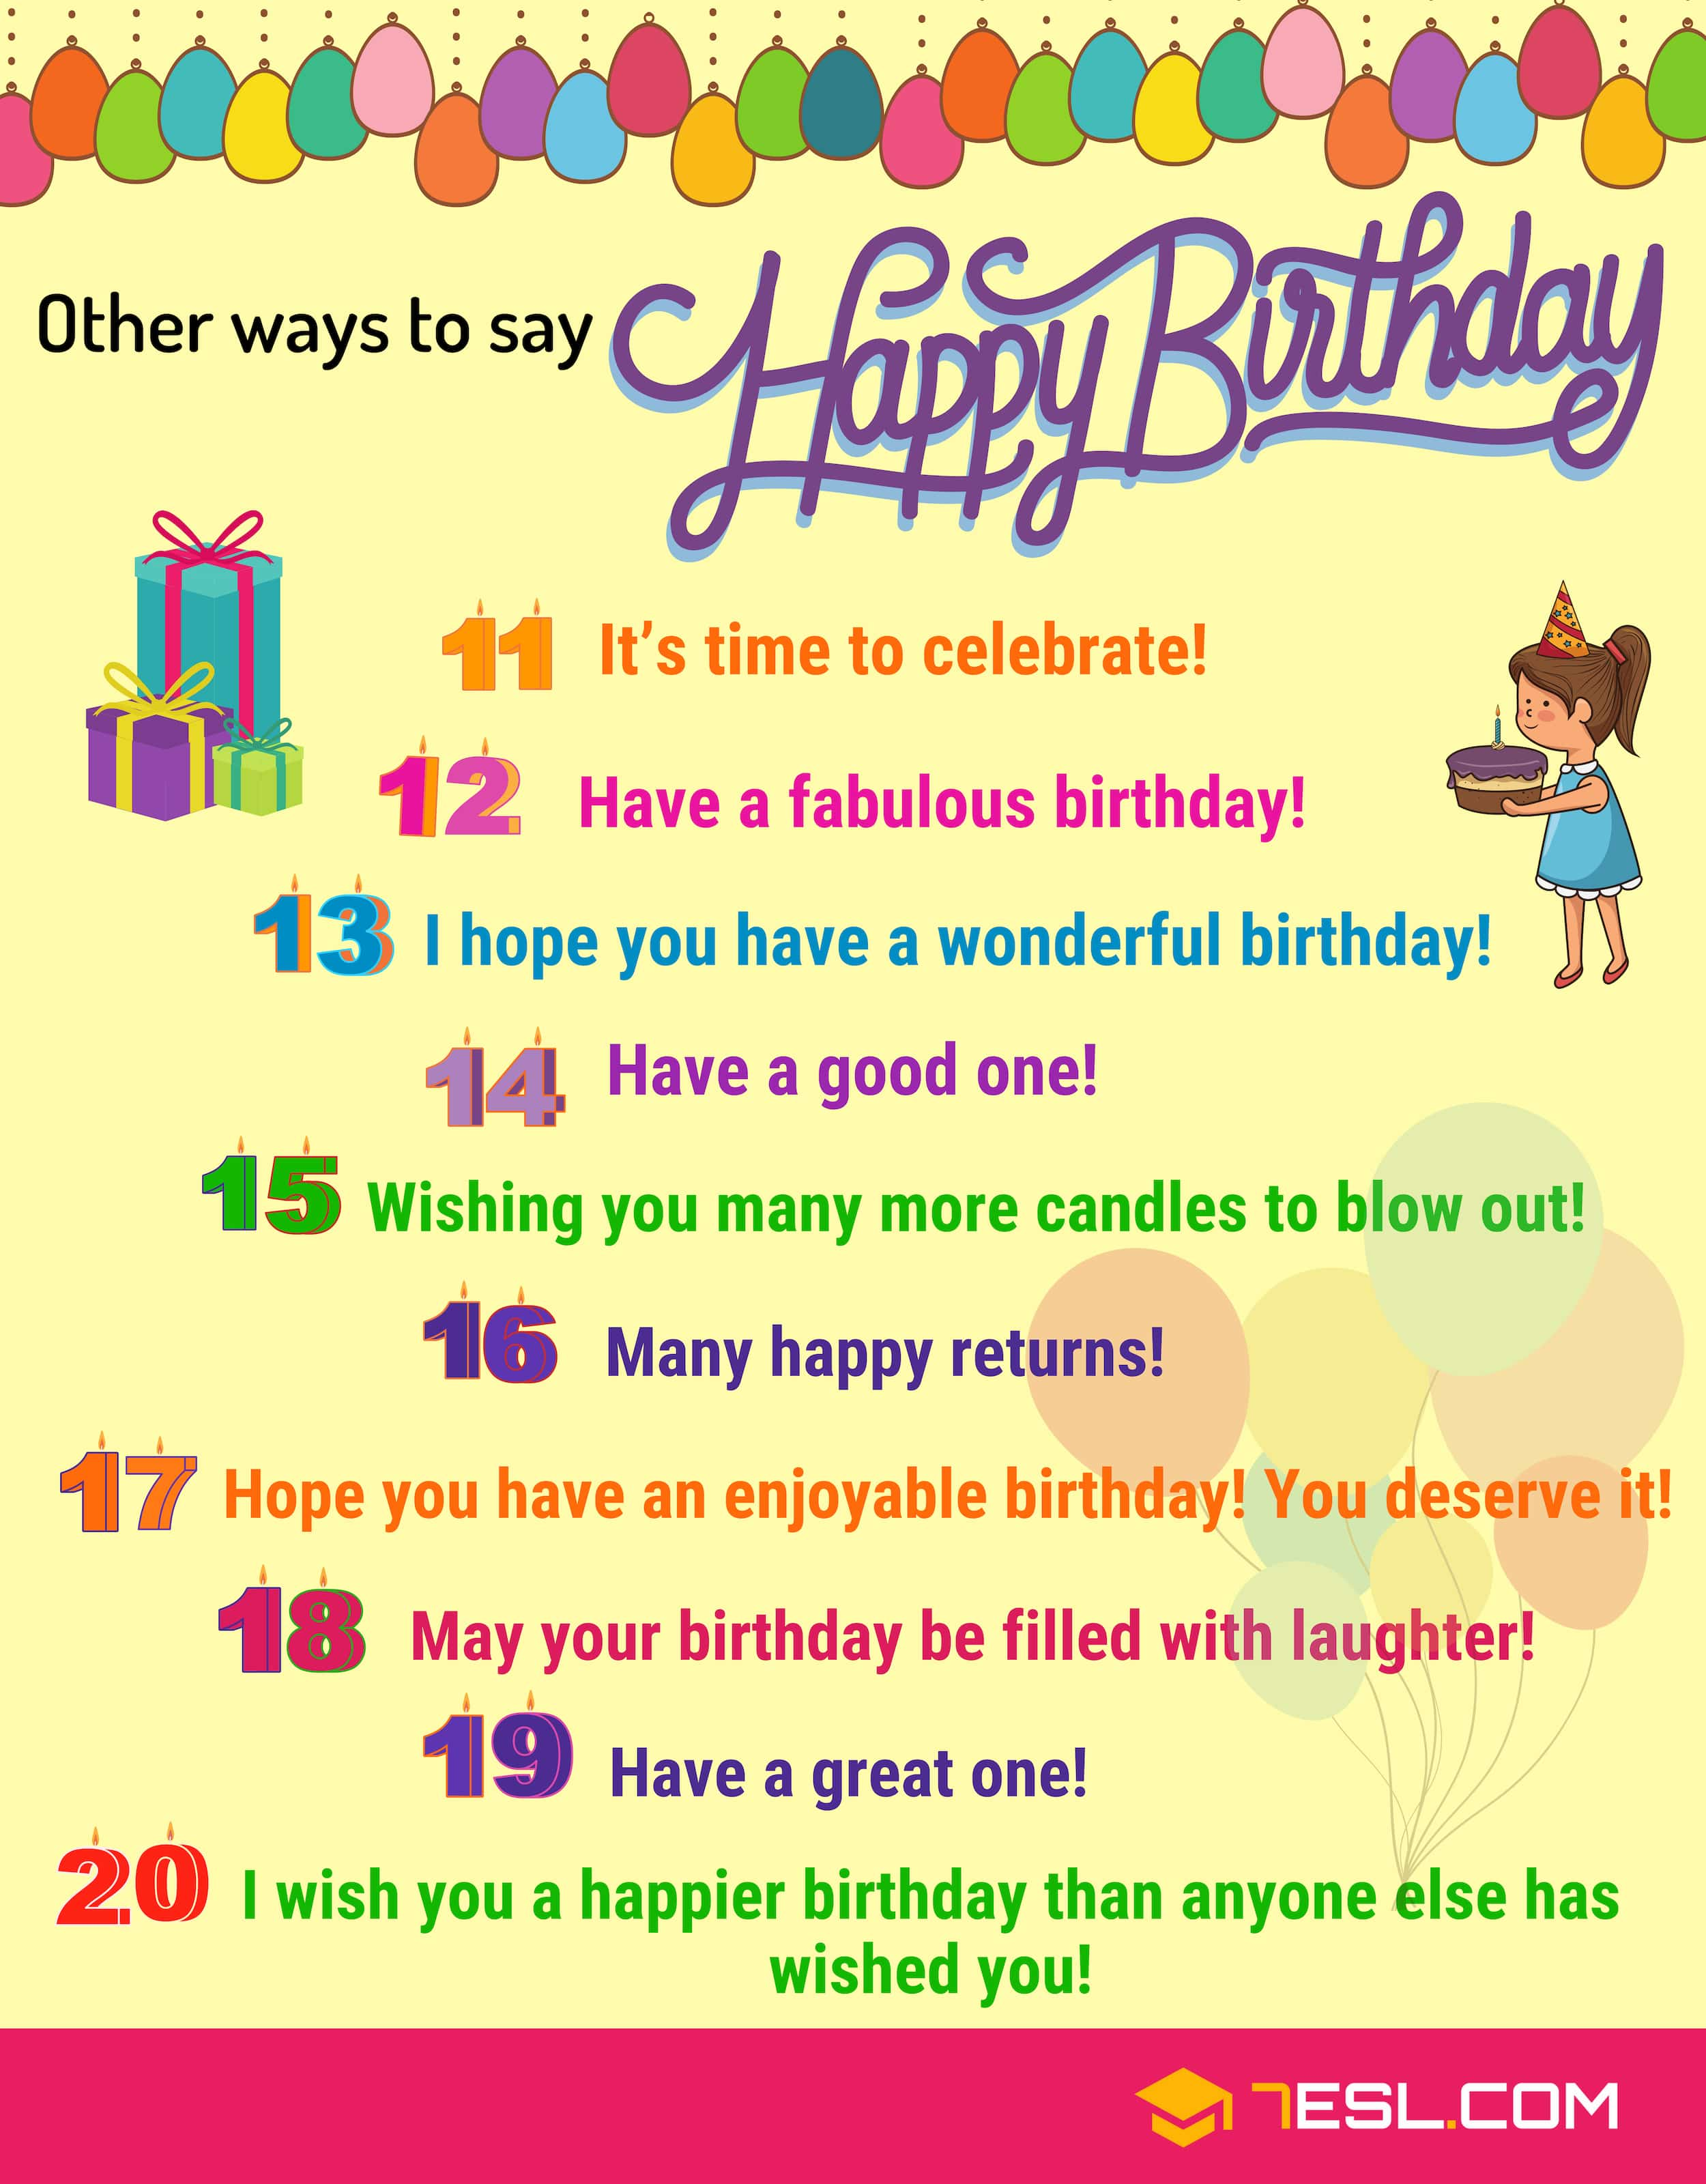 35 Cute And Funny Ways To Say Happy Birthday In English 7esl